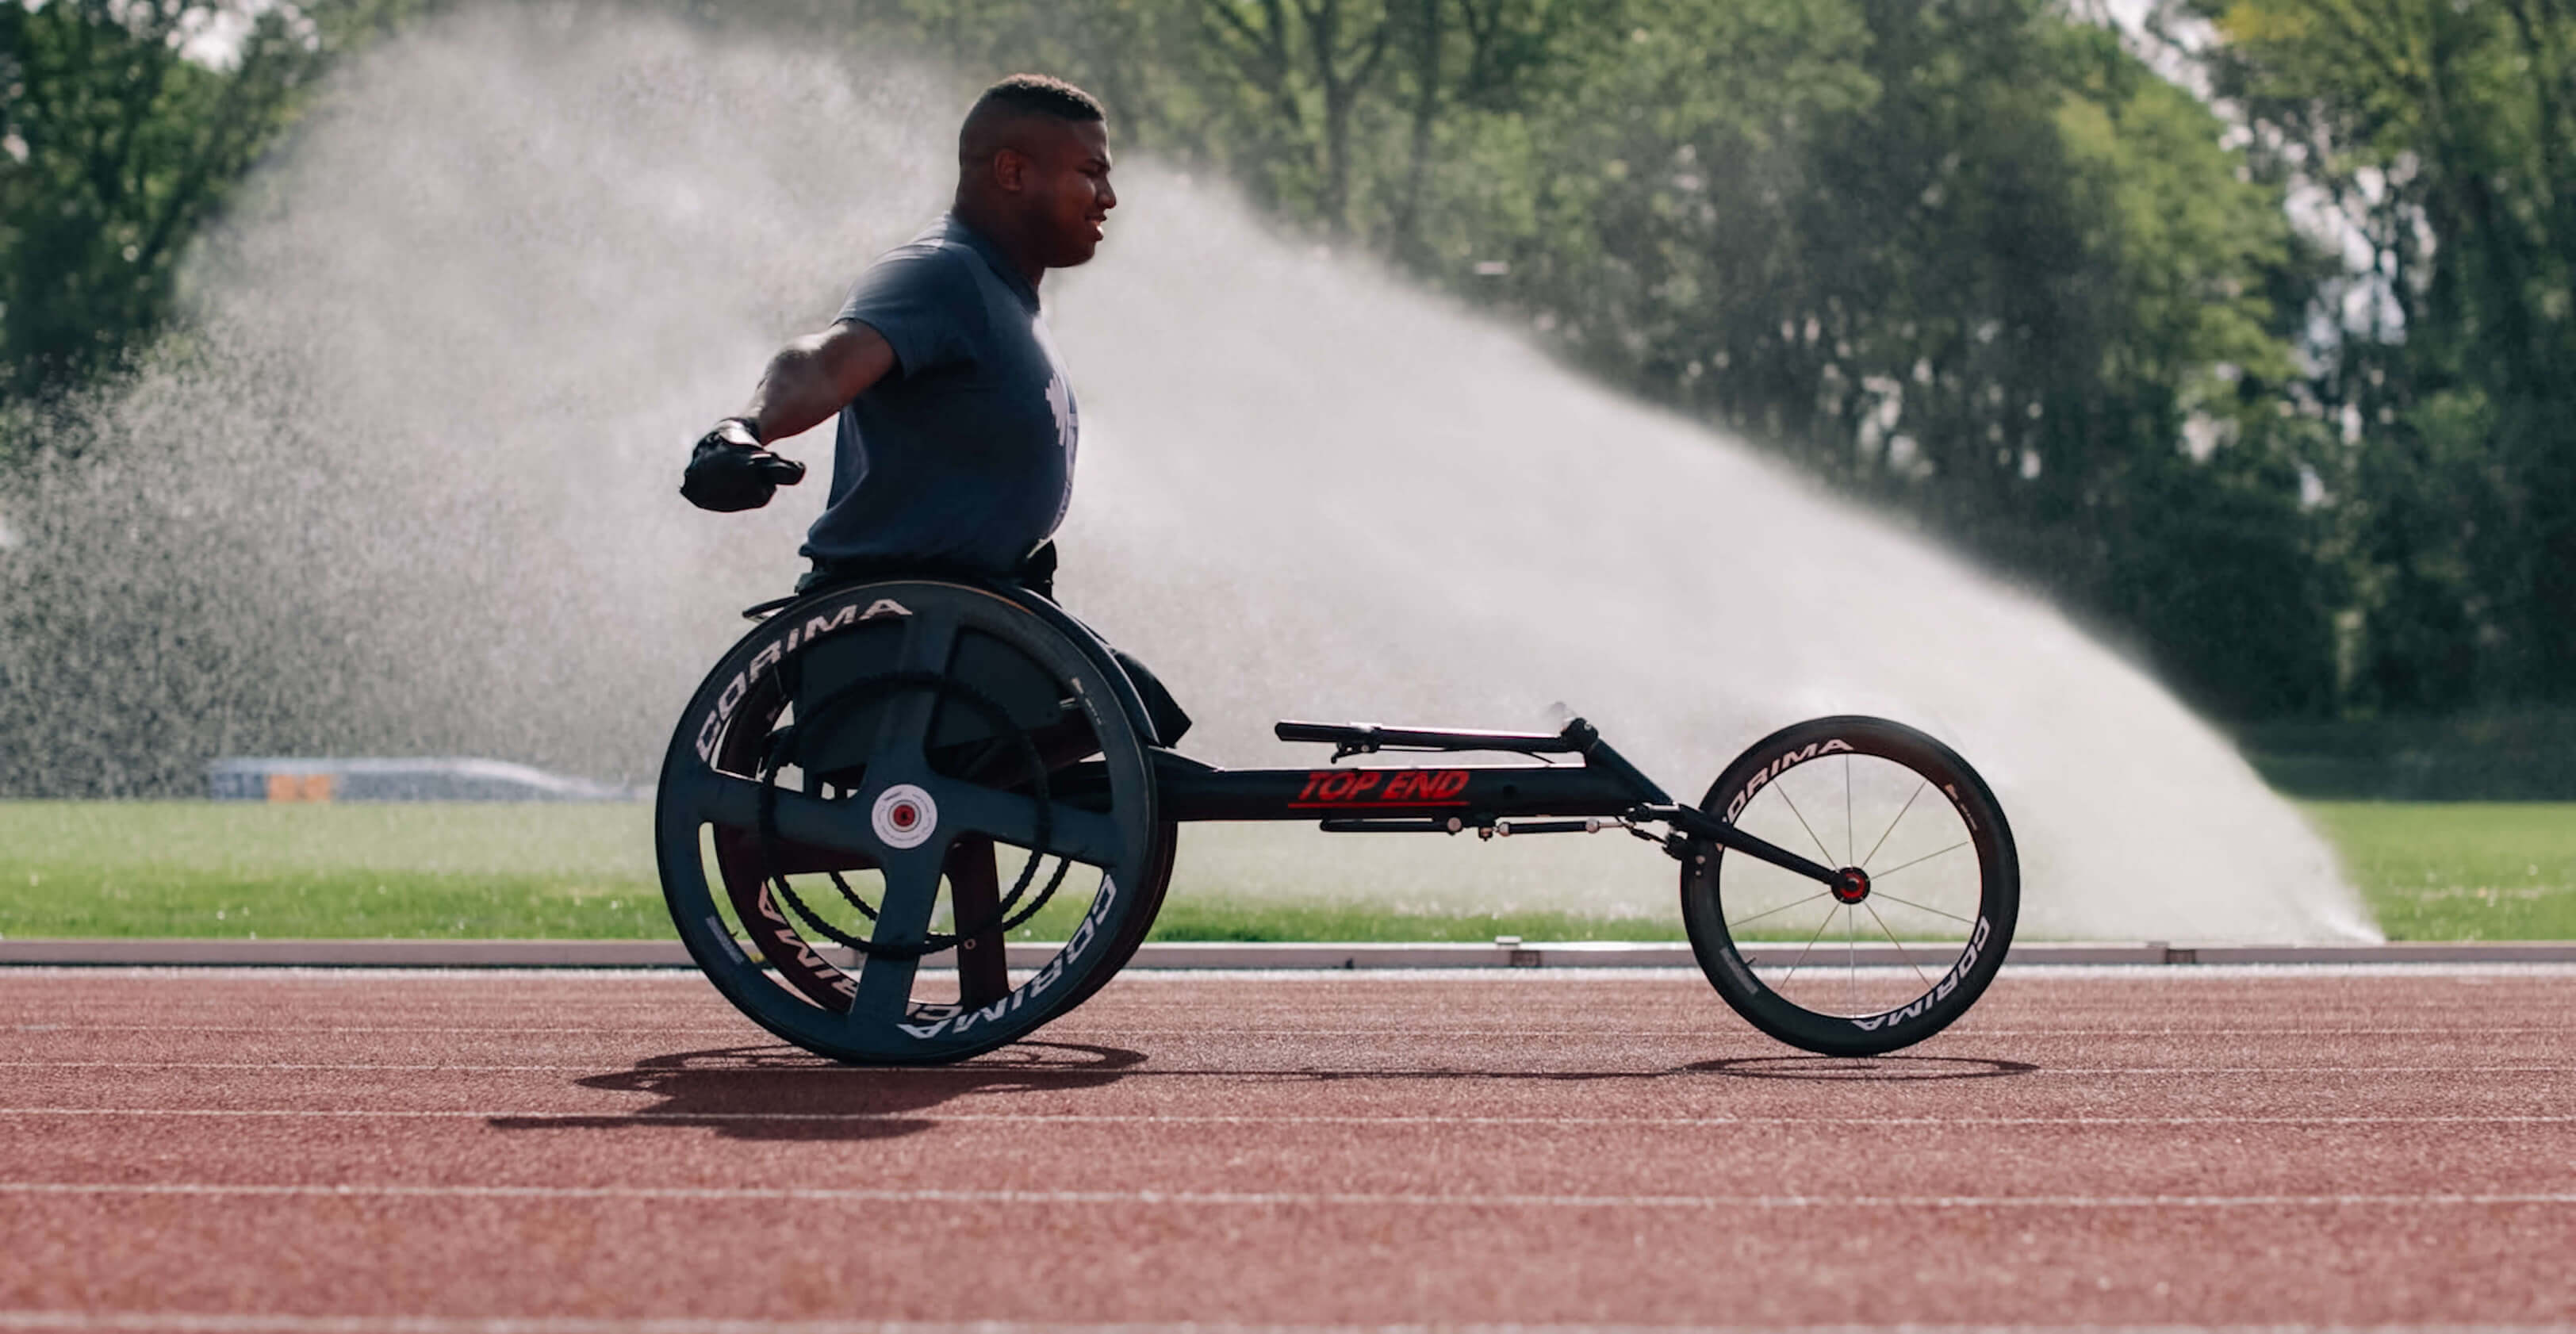 Ryan Major - Catch a Lift Fund, Paralympic Athlete